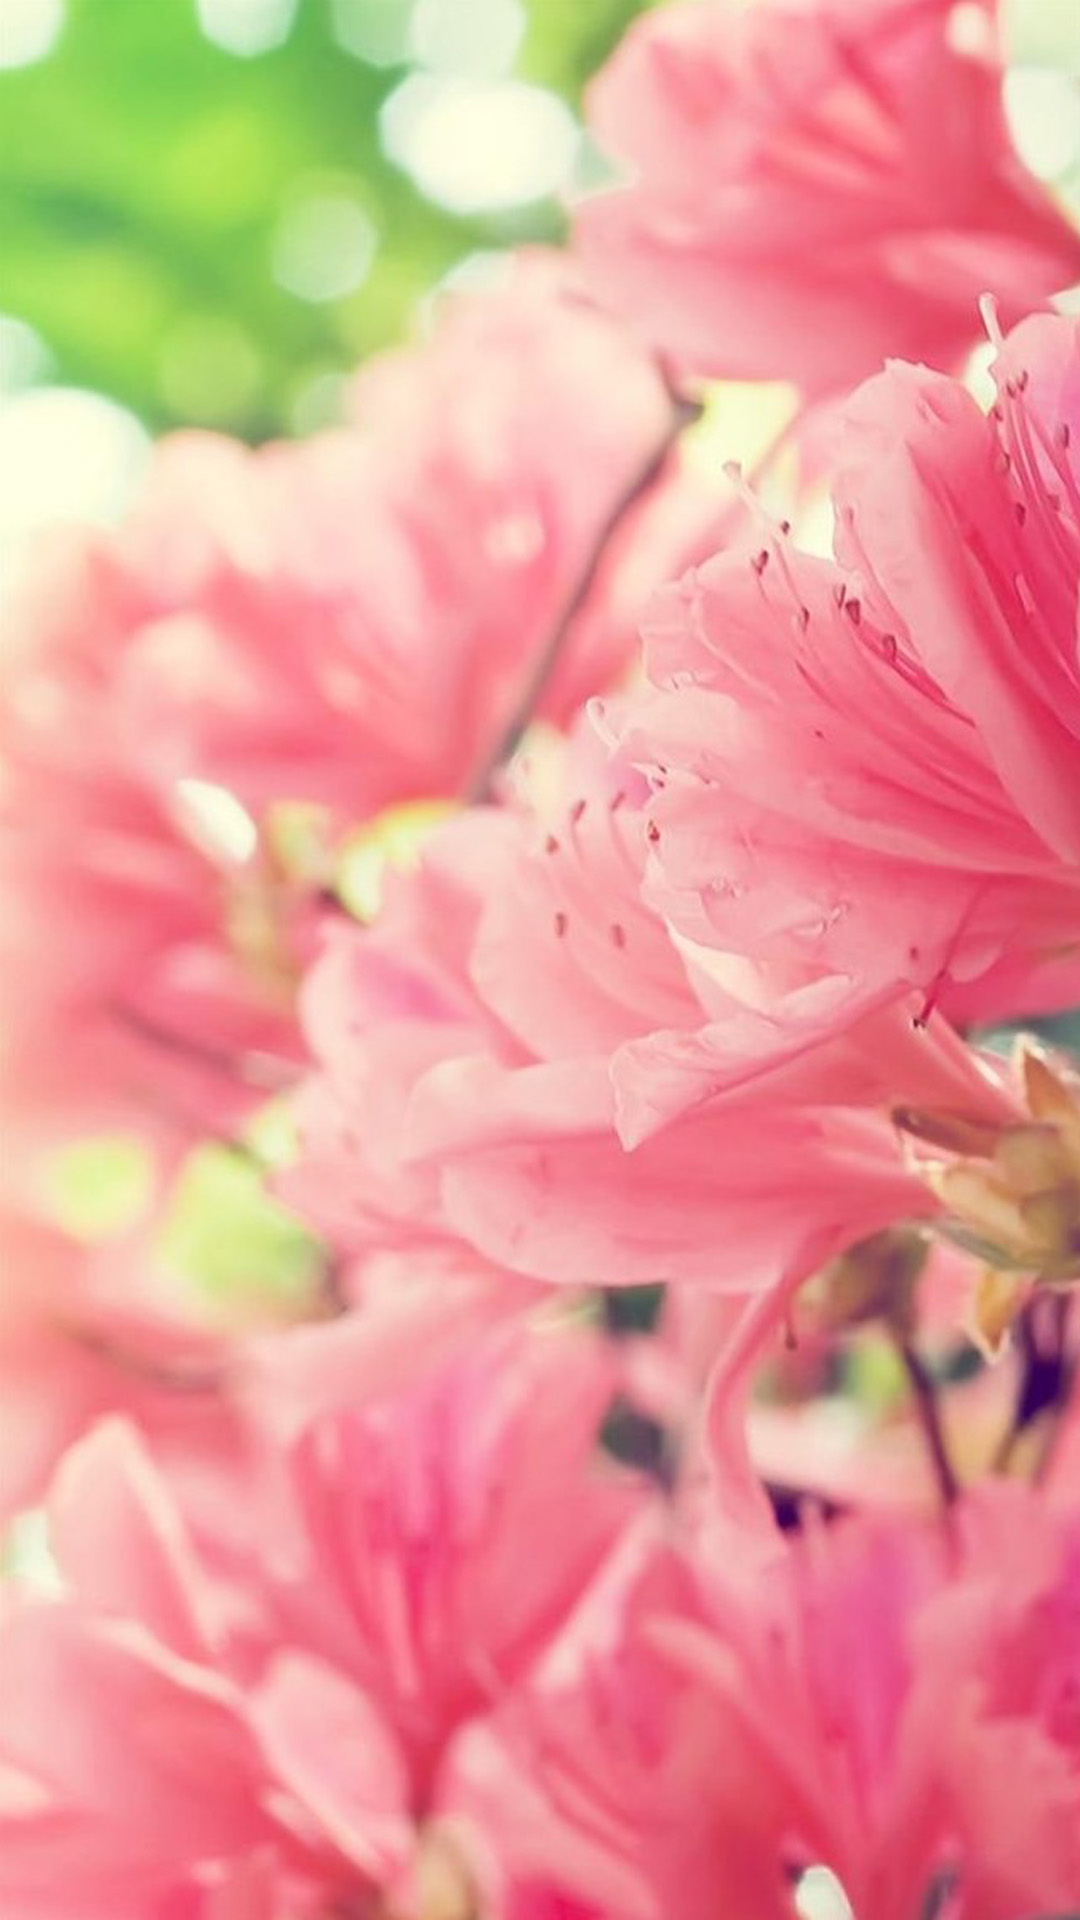 Nature Blossom Flower Bunch Iphone Photos Pretty Profile Pictures Of Flowers 1100259 Hd Wallpaper Backgrounds Download